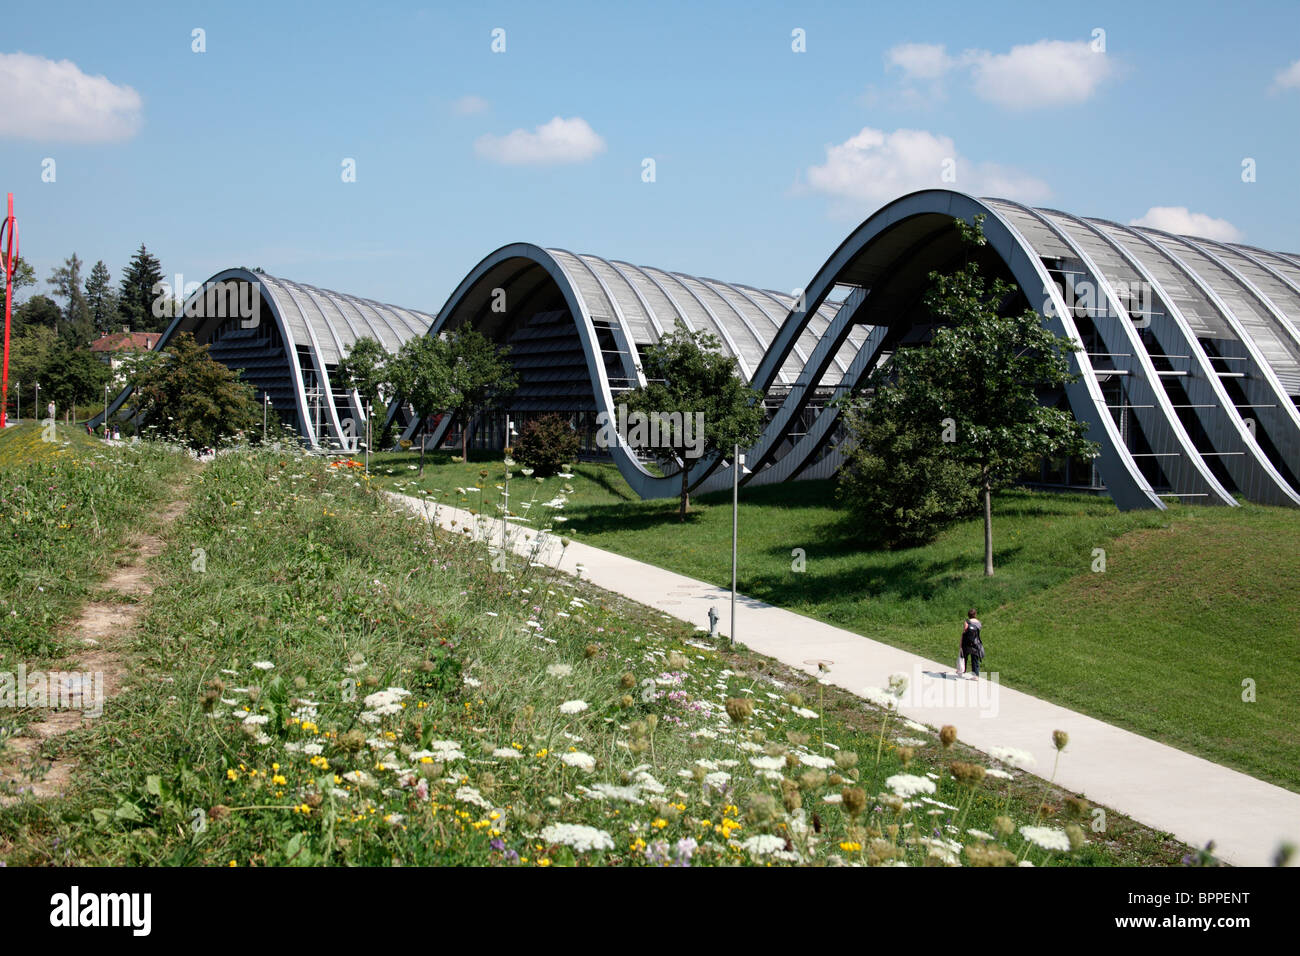 The spectacular sine wave architecture of the Paul Klee Zentrum, Bern, Switzerland - Stock Image